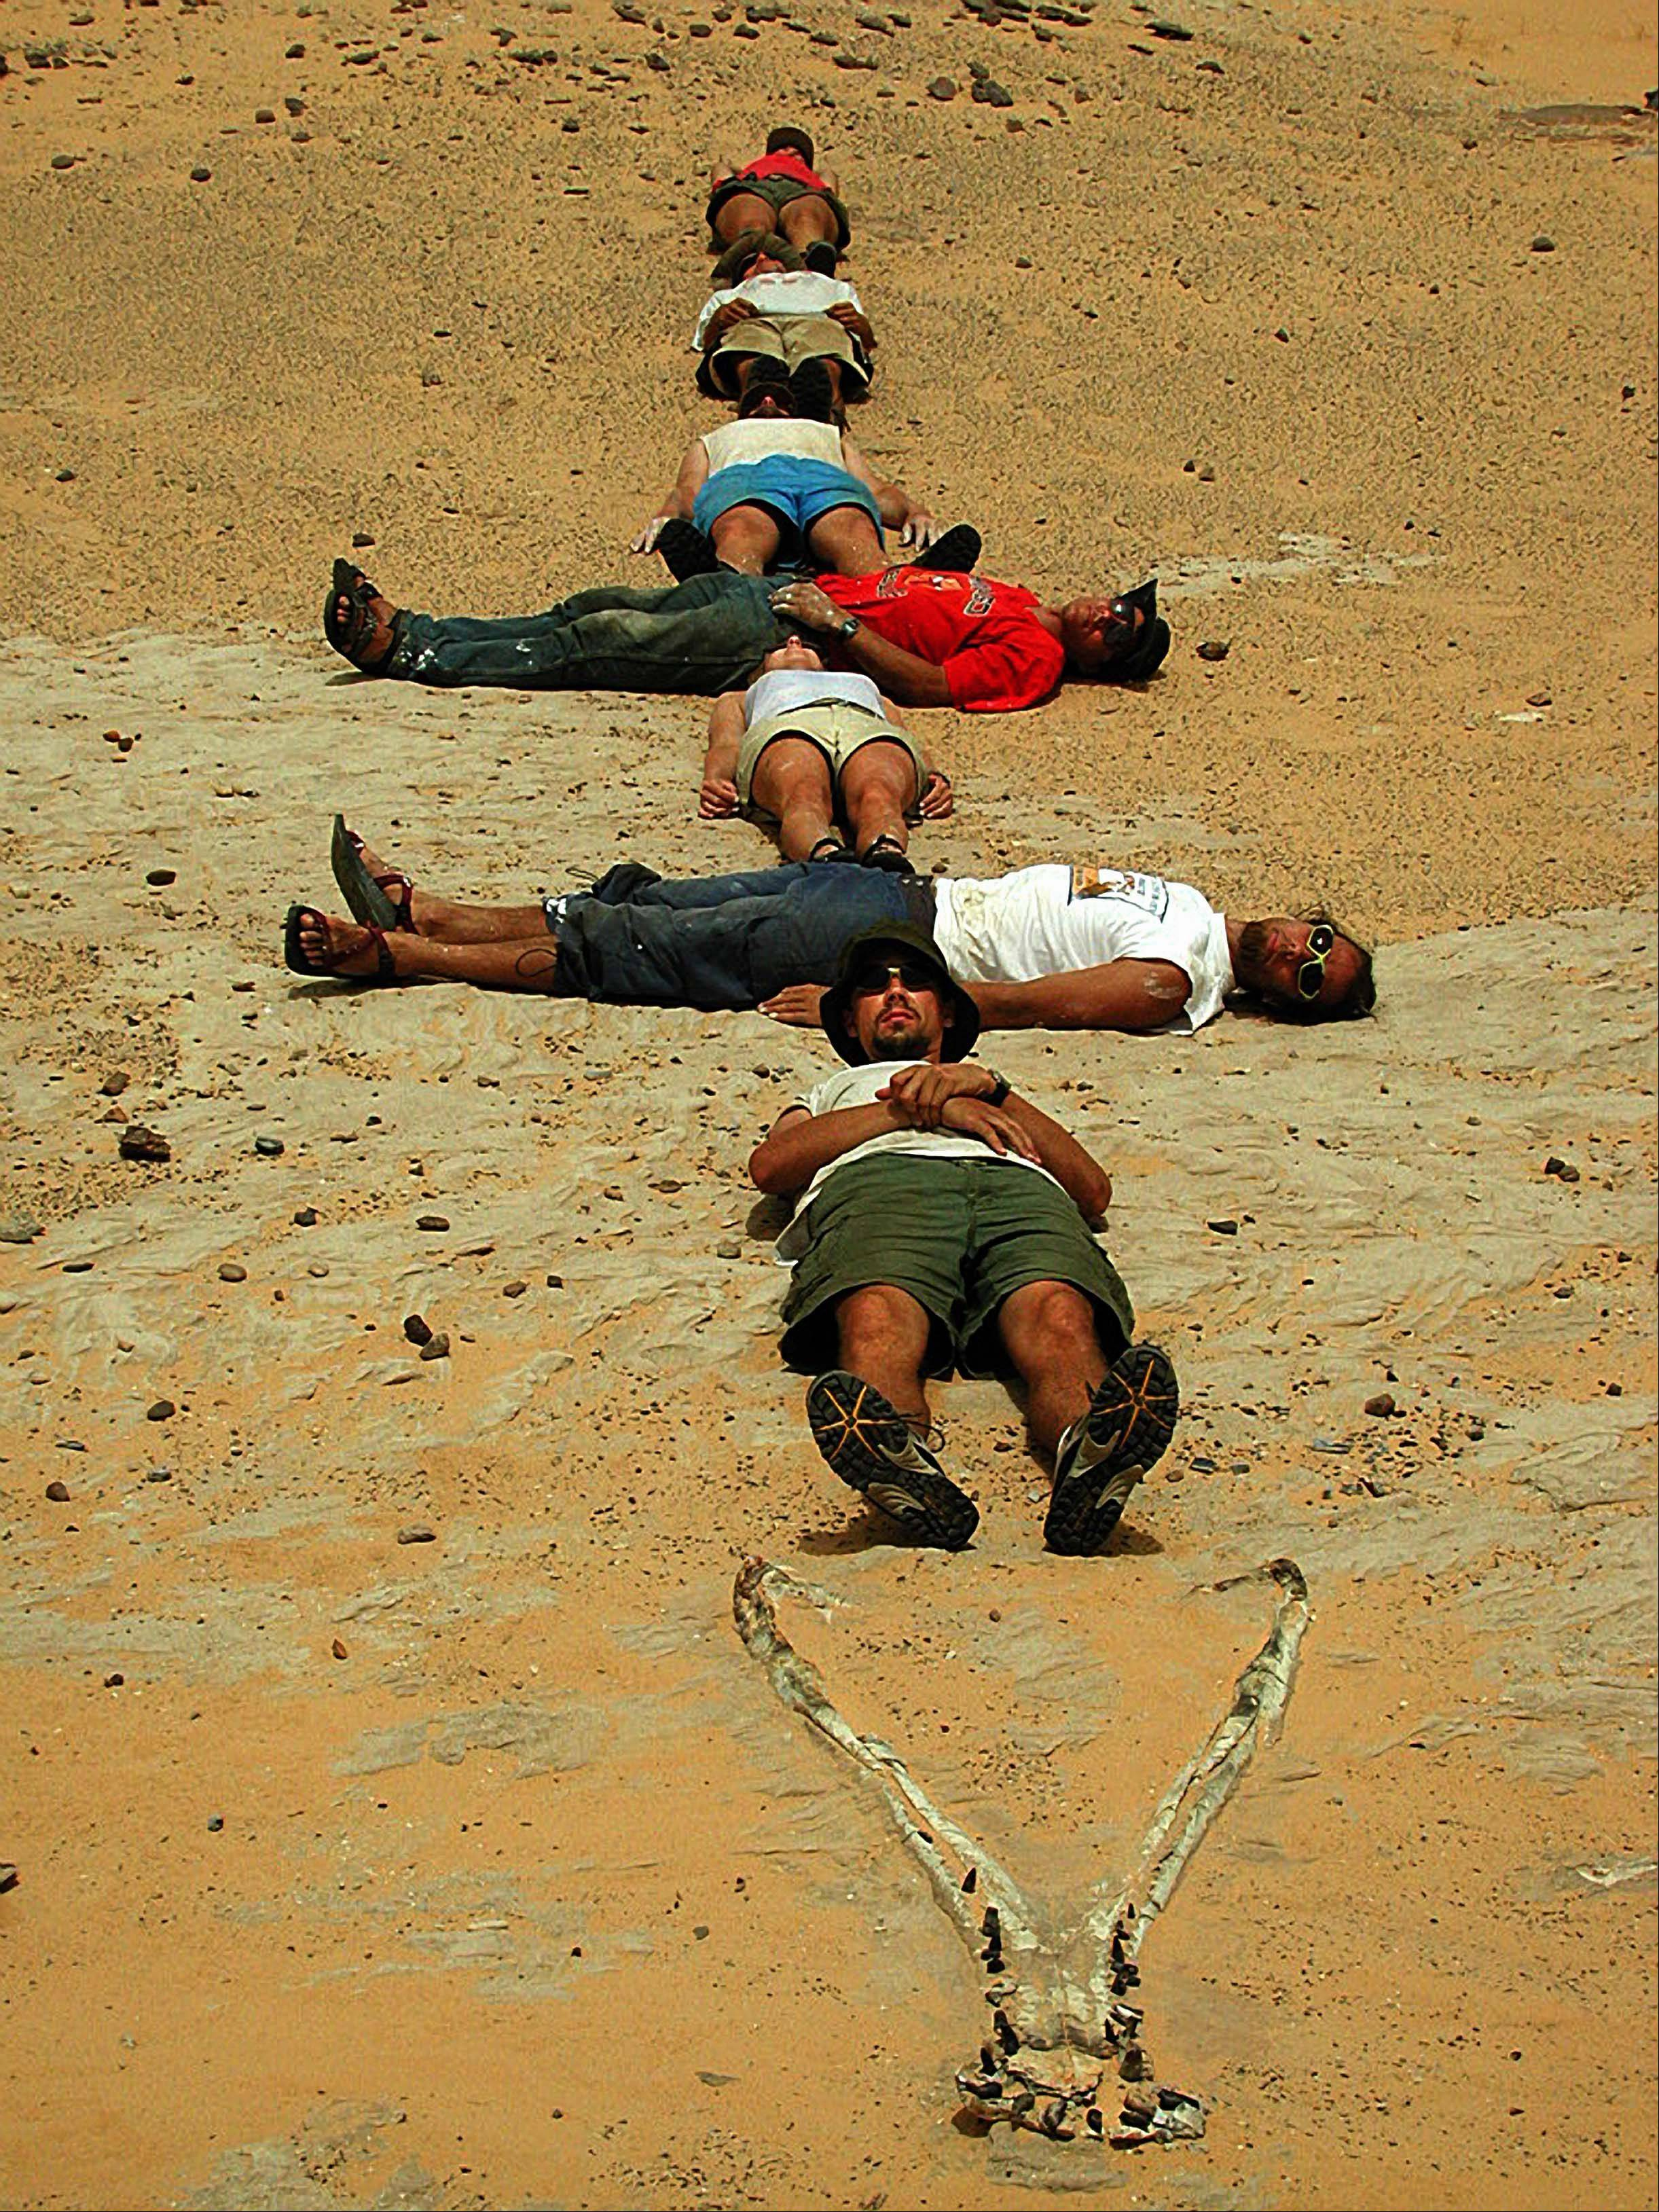 "A ""SuperCroc"" exhibit featuring 40-foot crocodiles that lived 110 million years ago is headed in early May to Gail Borden Public Library in Elgin. In this photo, the expedition team that found the fossil in 2000 in Niger stretches behind SuperCroc's jaws to illustrate the crocodile's length."